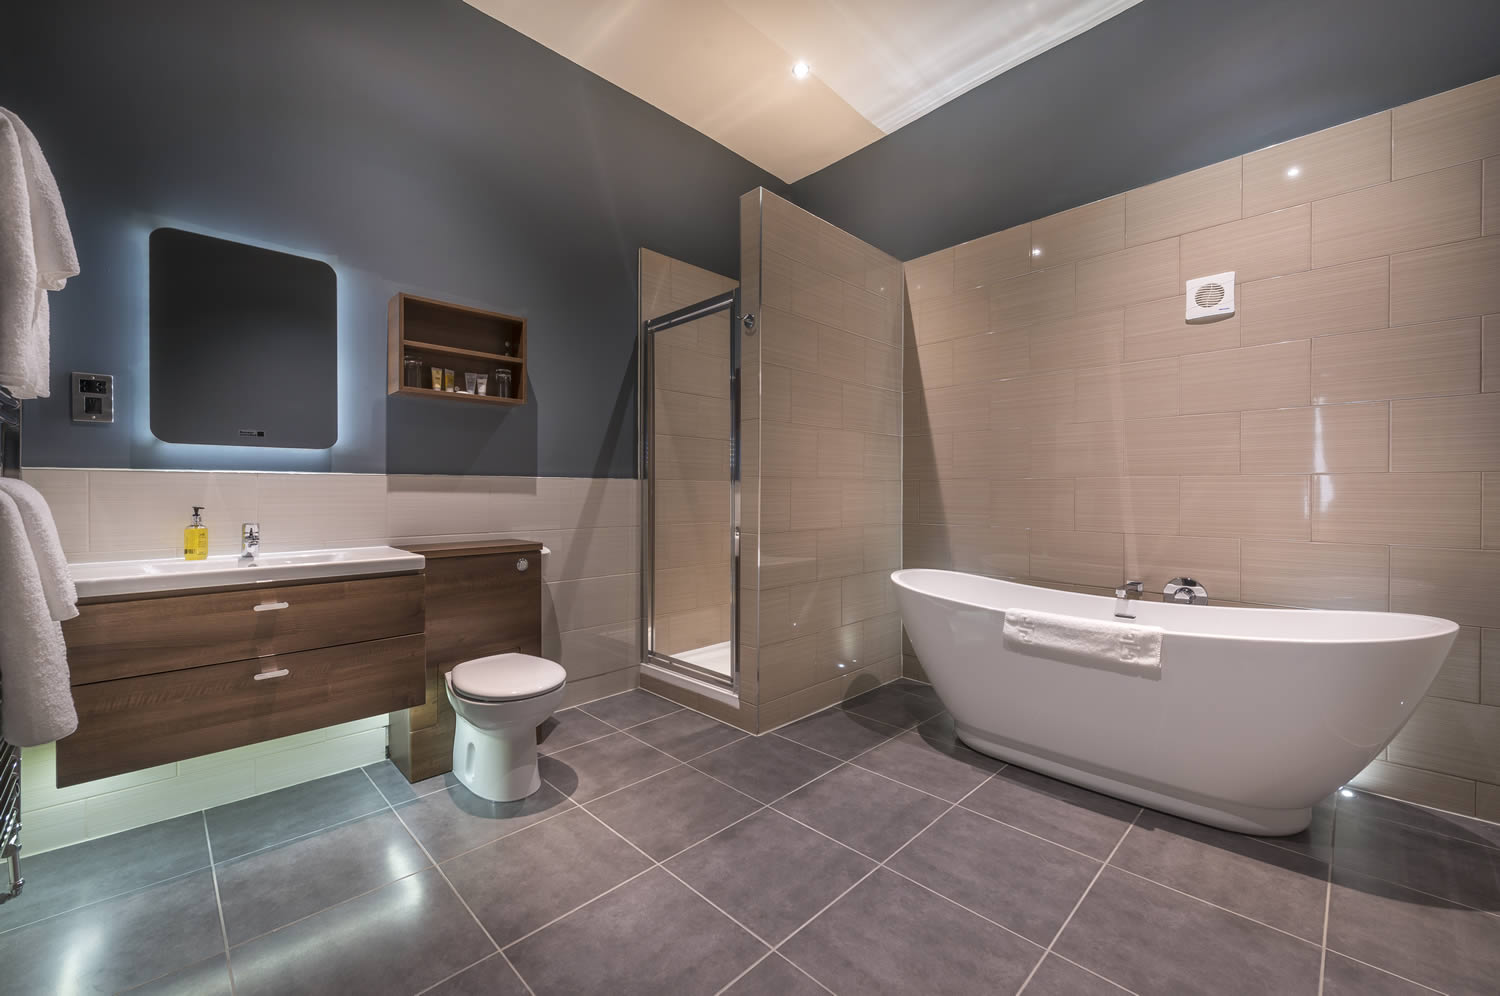 kings head hotel - accommodation - richmond - north yorkshire